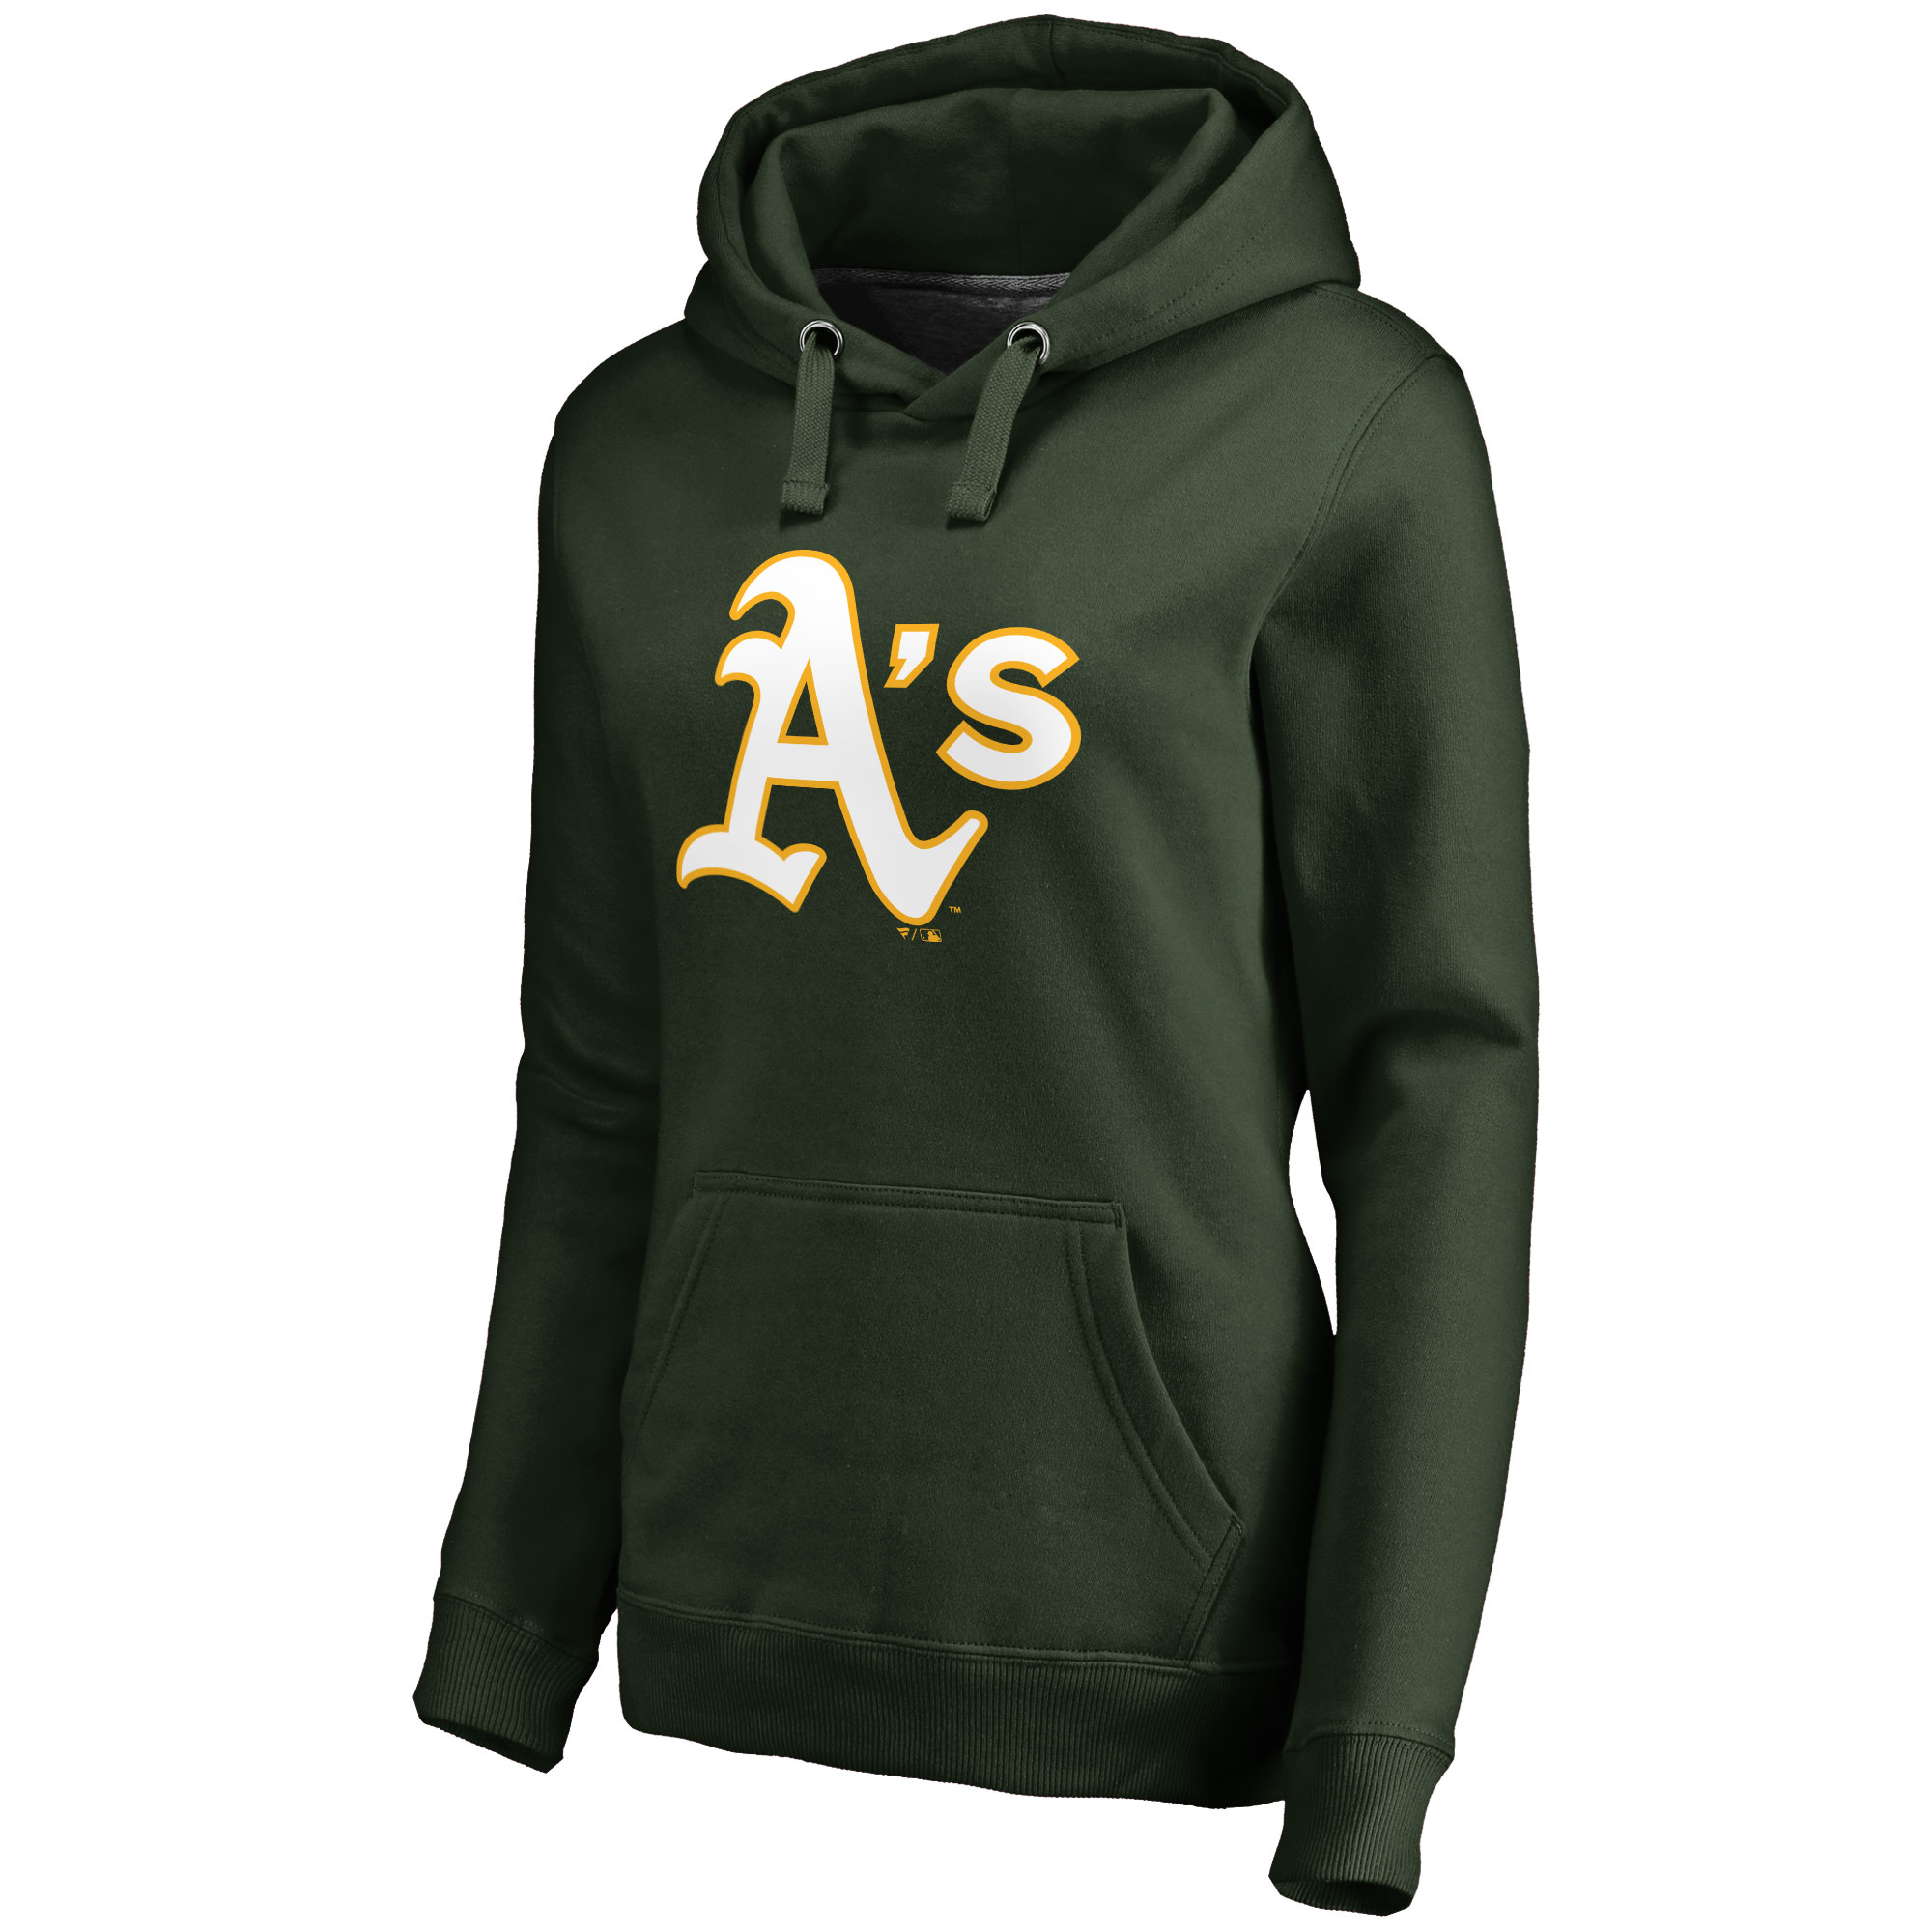 Oakland Athletics Women's Team Color Primary Logo Pullover Hoodie - Green